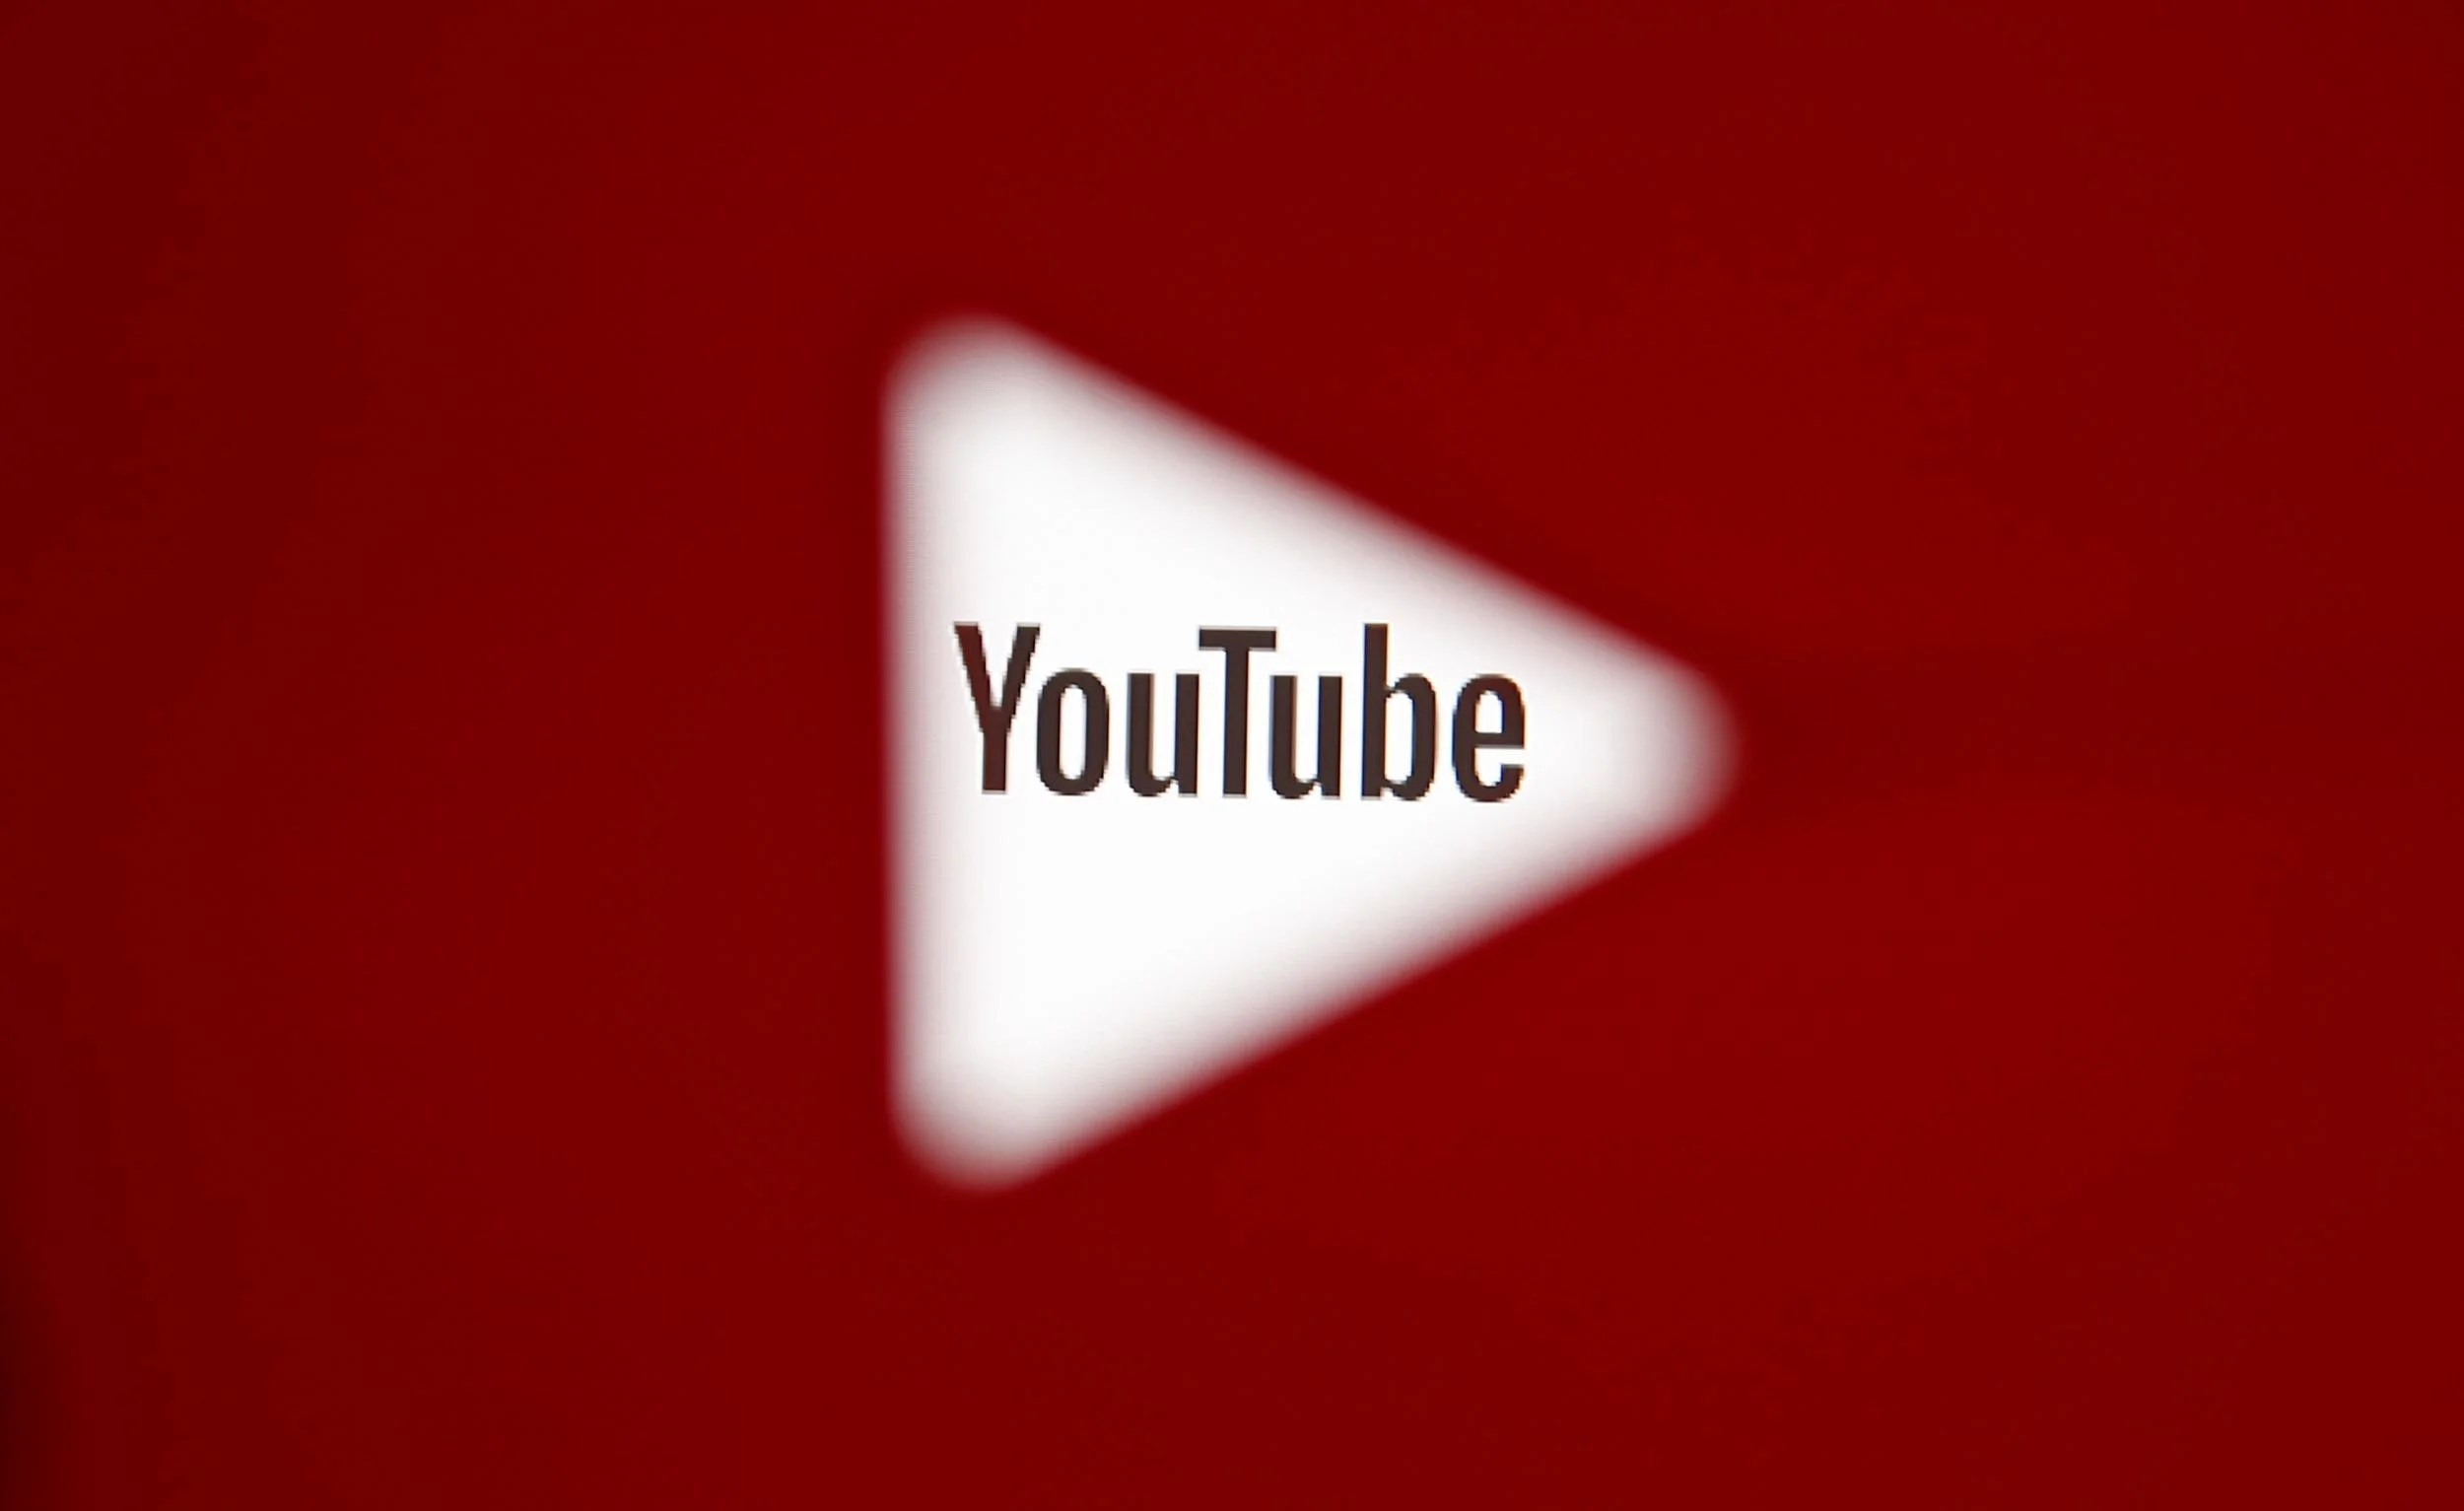 Videoder  YouTube video download app hits 40m installs despite new     YouTube video download app Videoder lets people access content offline for  free  but it goes